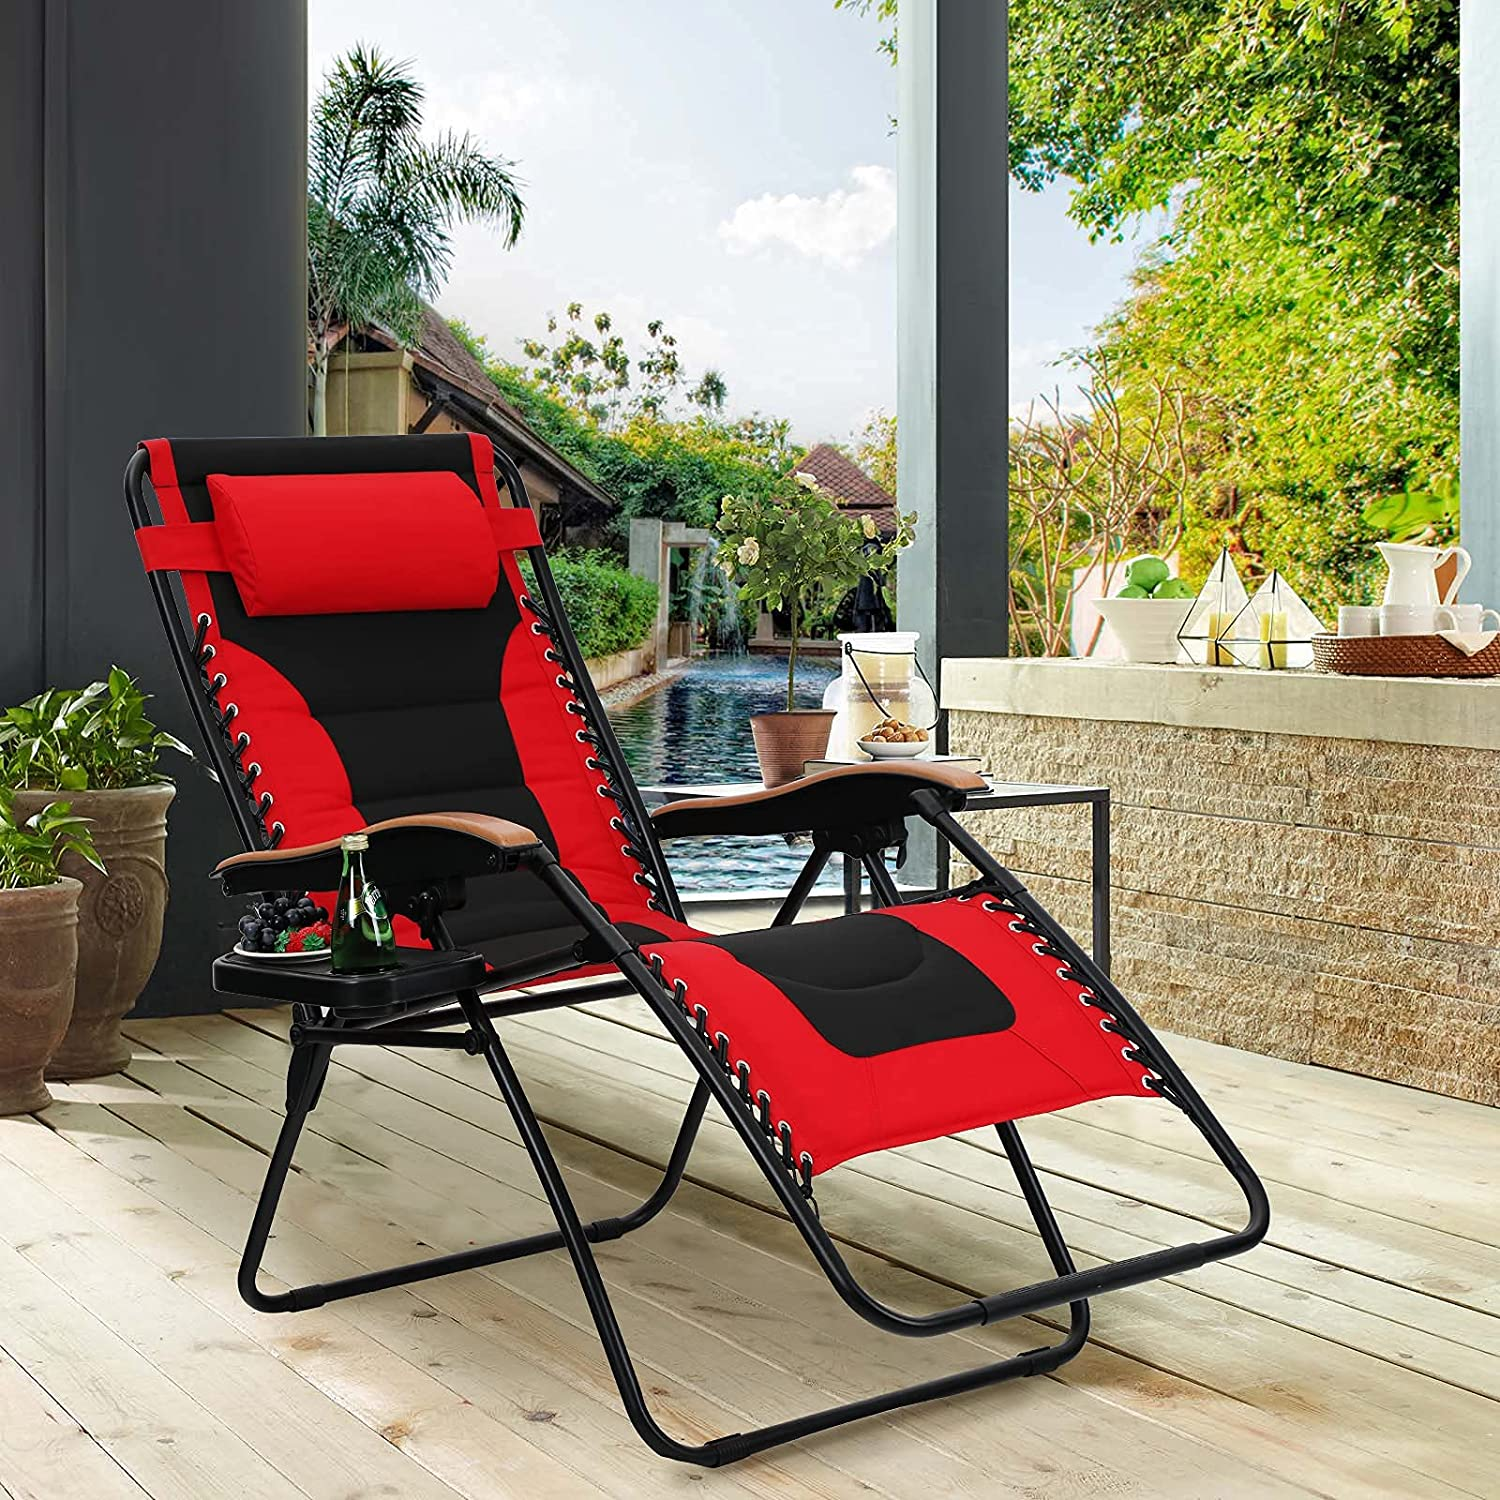 MAISON ARTS Oversize XL New Orleans Mall Padded Zero Anti Gr Chair Max 68% OFF Gravity Lounge